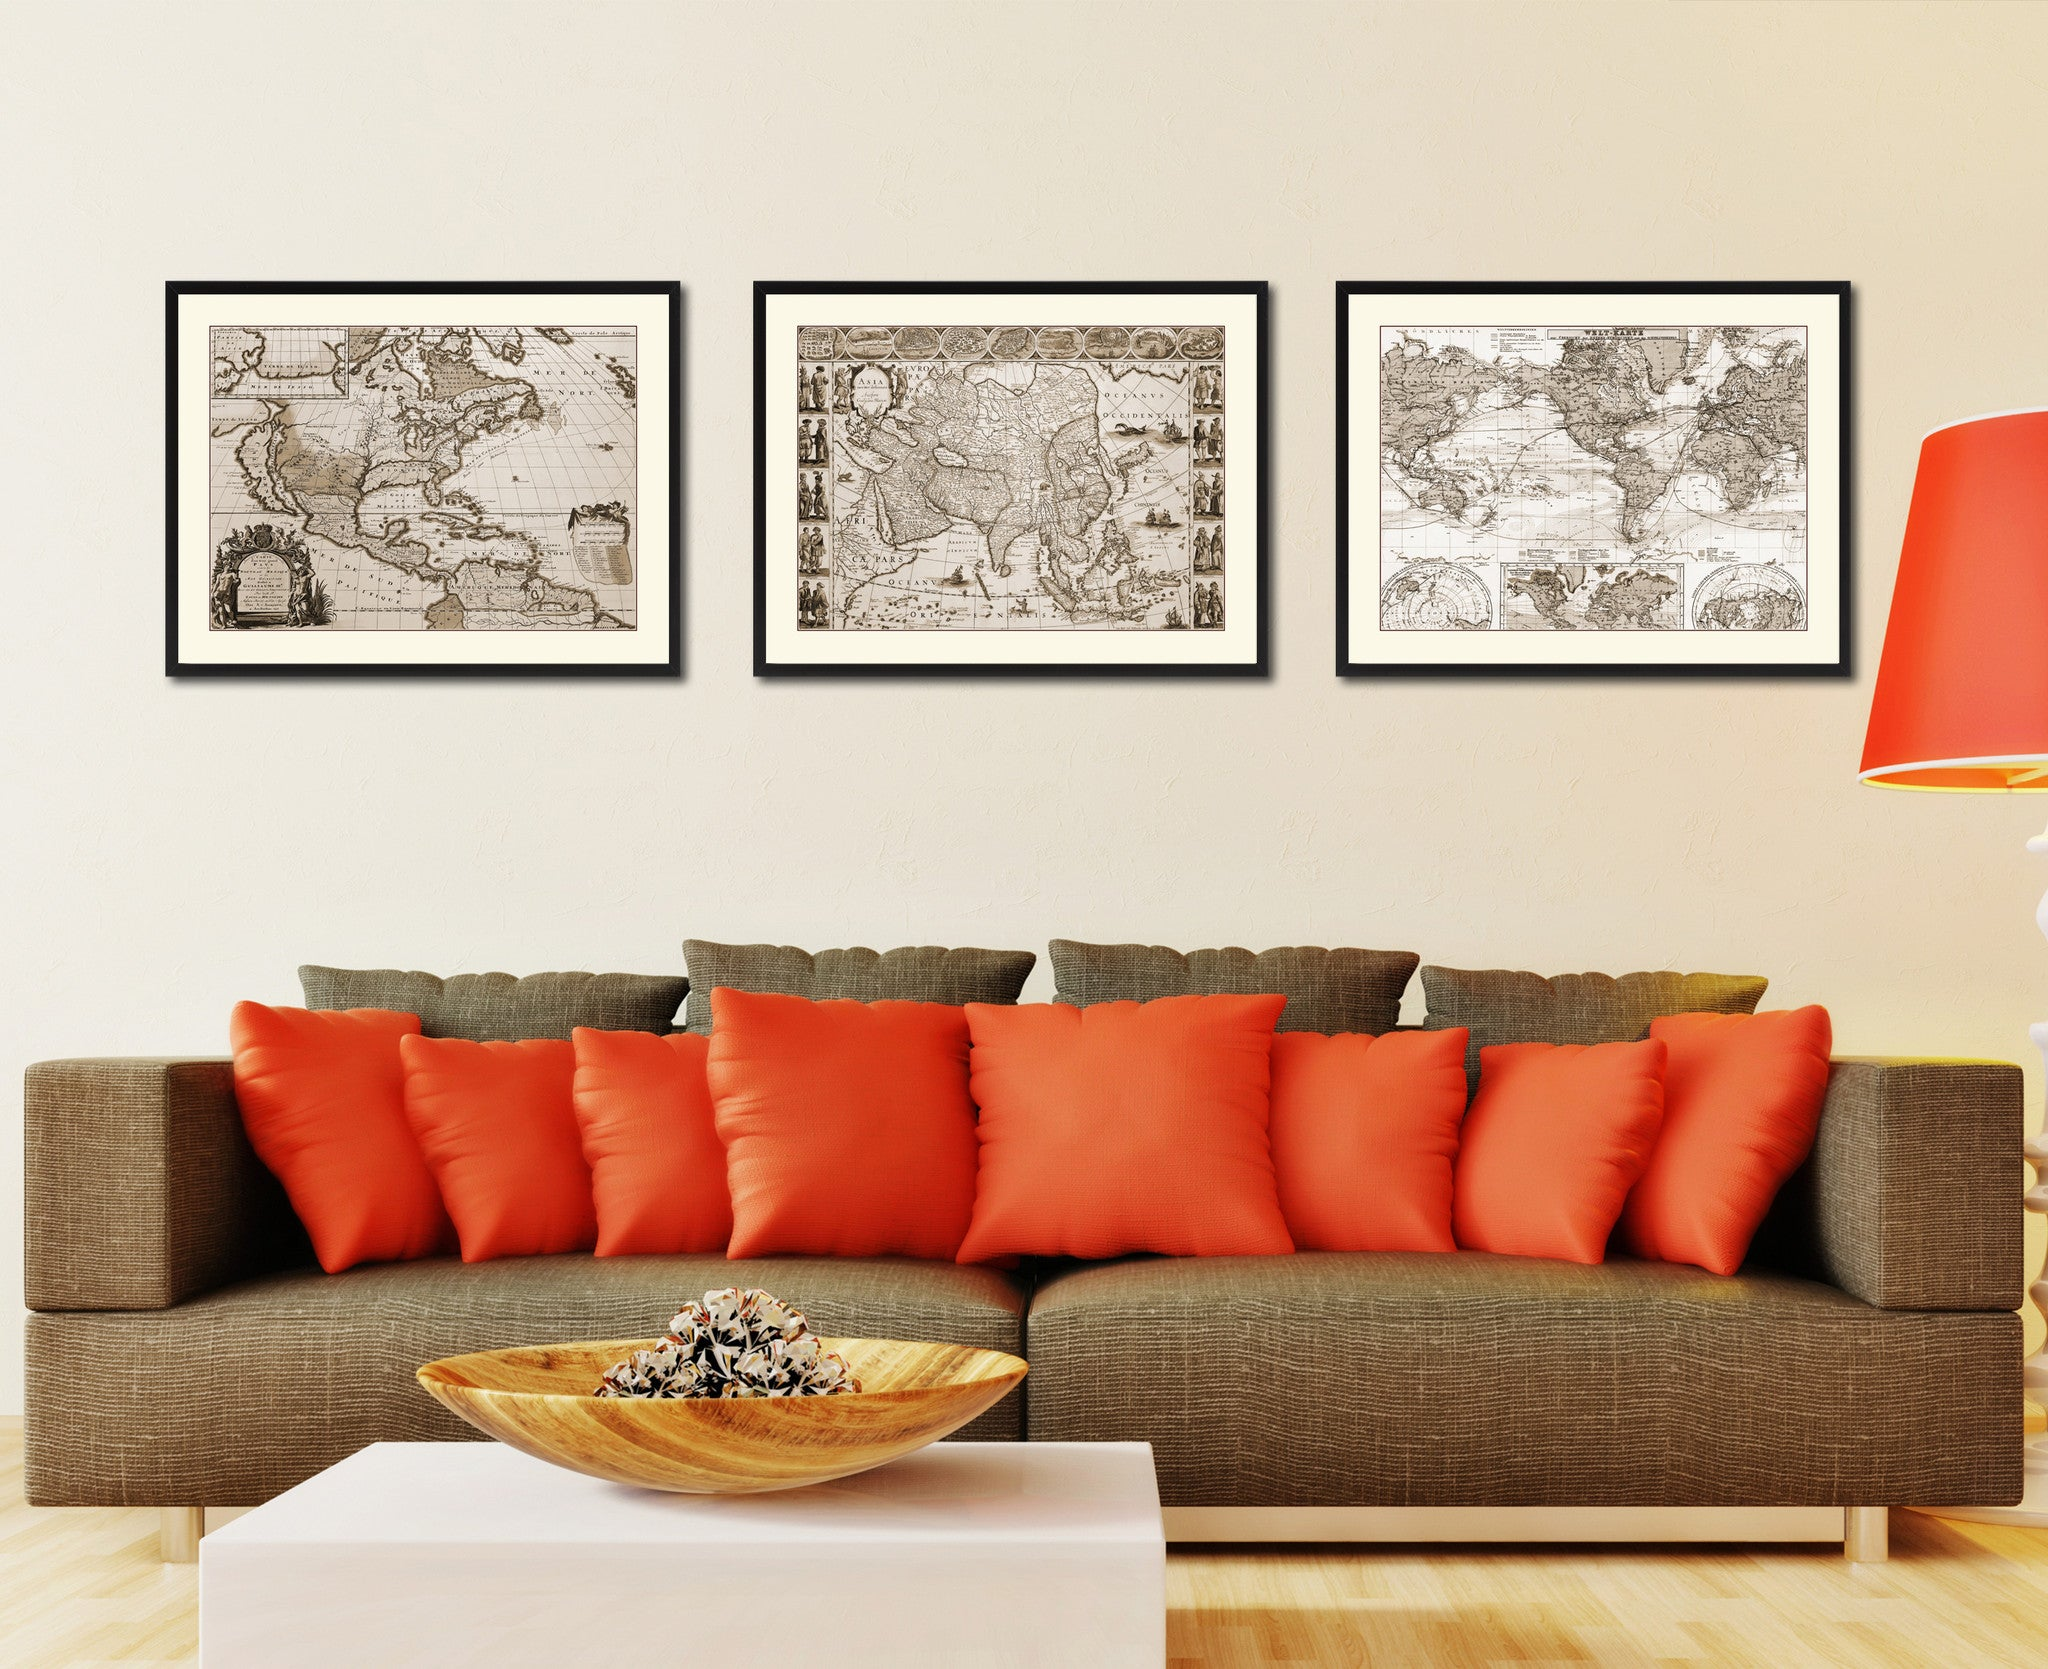 Asia Vintage Sepia Map Canvas Print, Picture Frame Gifts Home Decor Wall Art Decoration